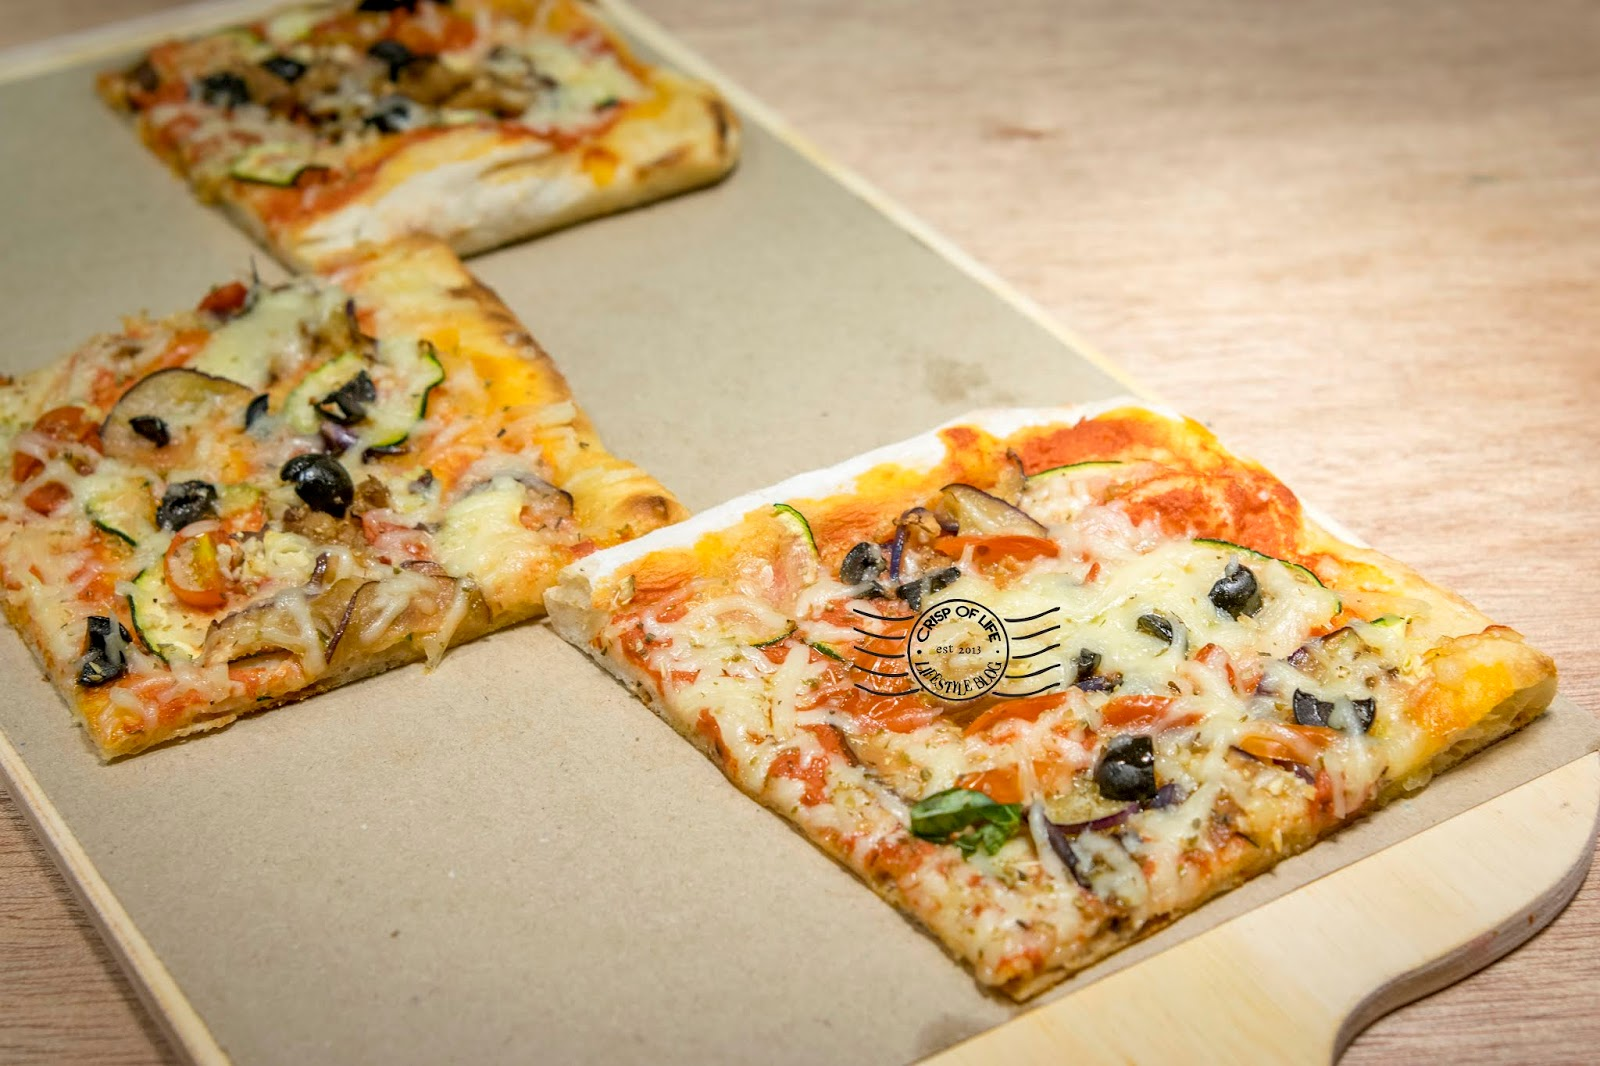 Fantastic & Authentic Italian Pizza at OTTO Pizza Romana @ Lebuh Carnavon, Penang